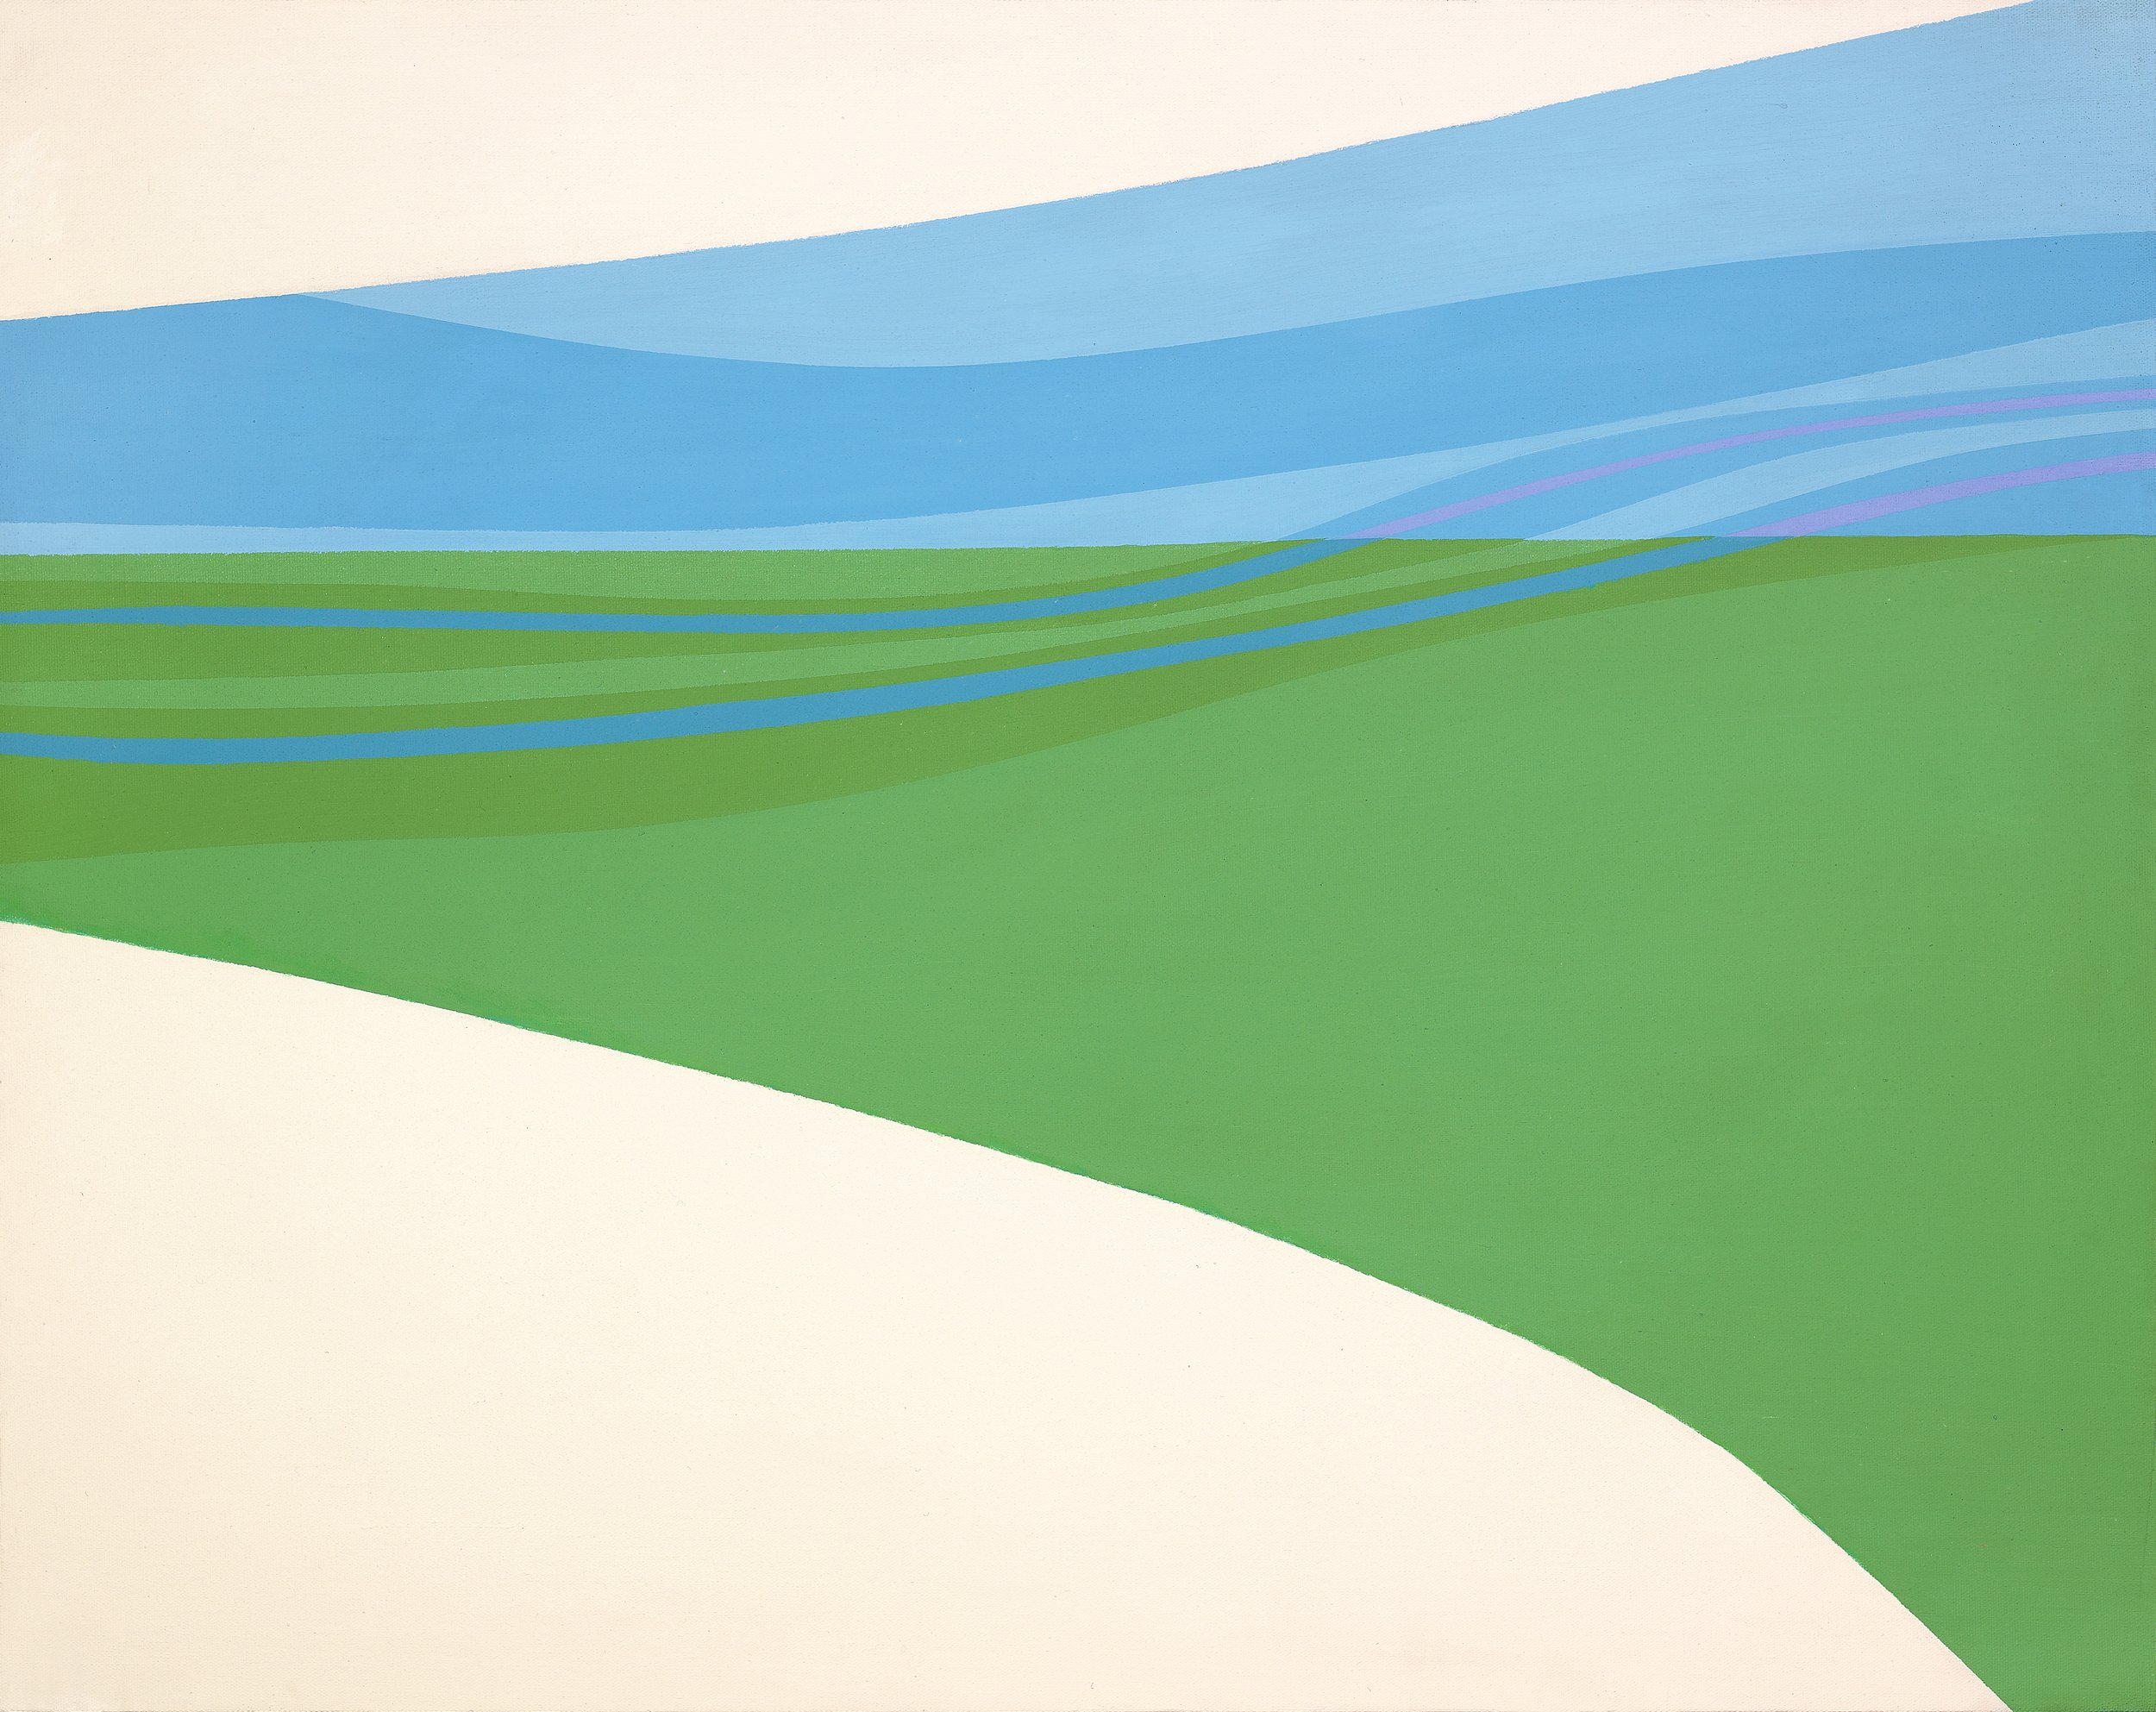 Untitled , 1964  acrylic on canvas 24 x 30 inches; 61 x 76.2 centimeters